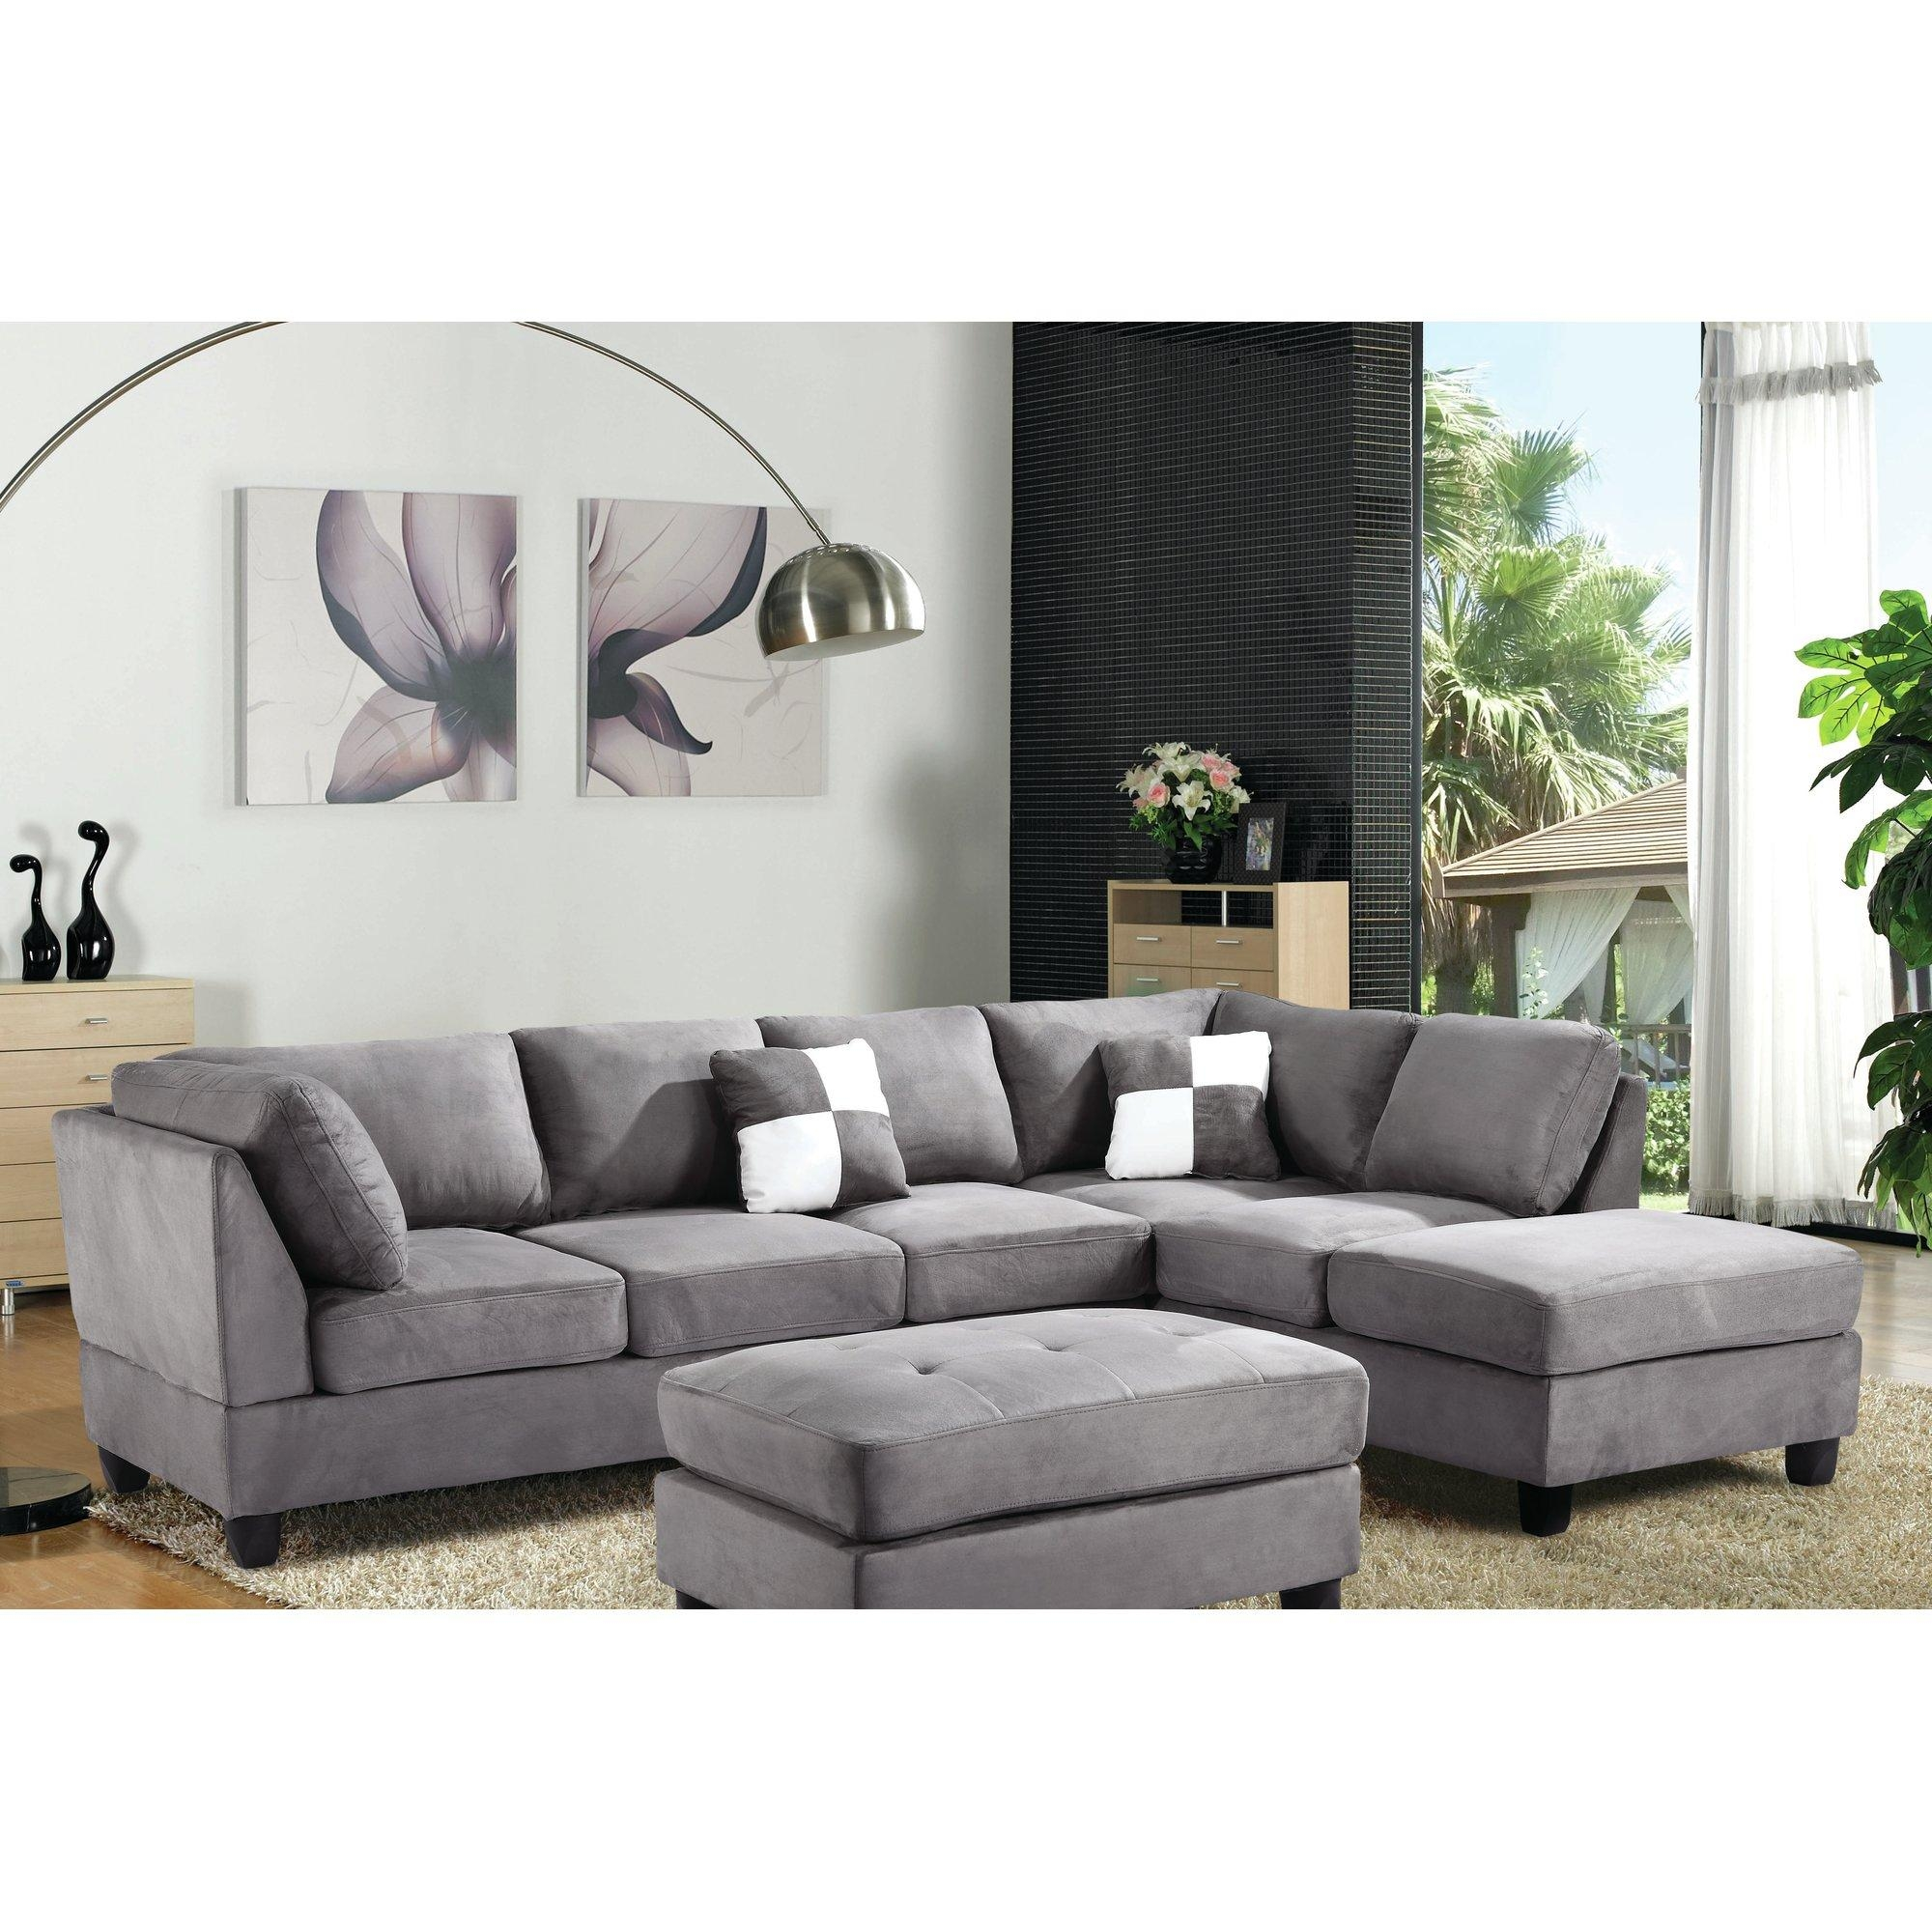 Furniture: Reversible Sectional Sofa Chaise | Sofa With Ottoman Regarding Sofa With Chaise And Ottoman (View 15 of 20)